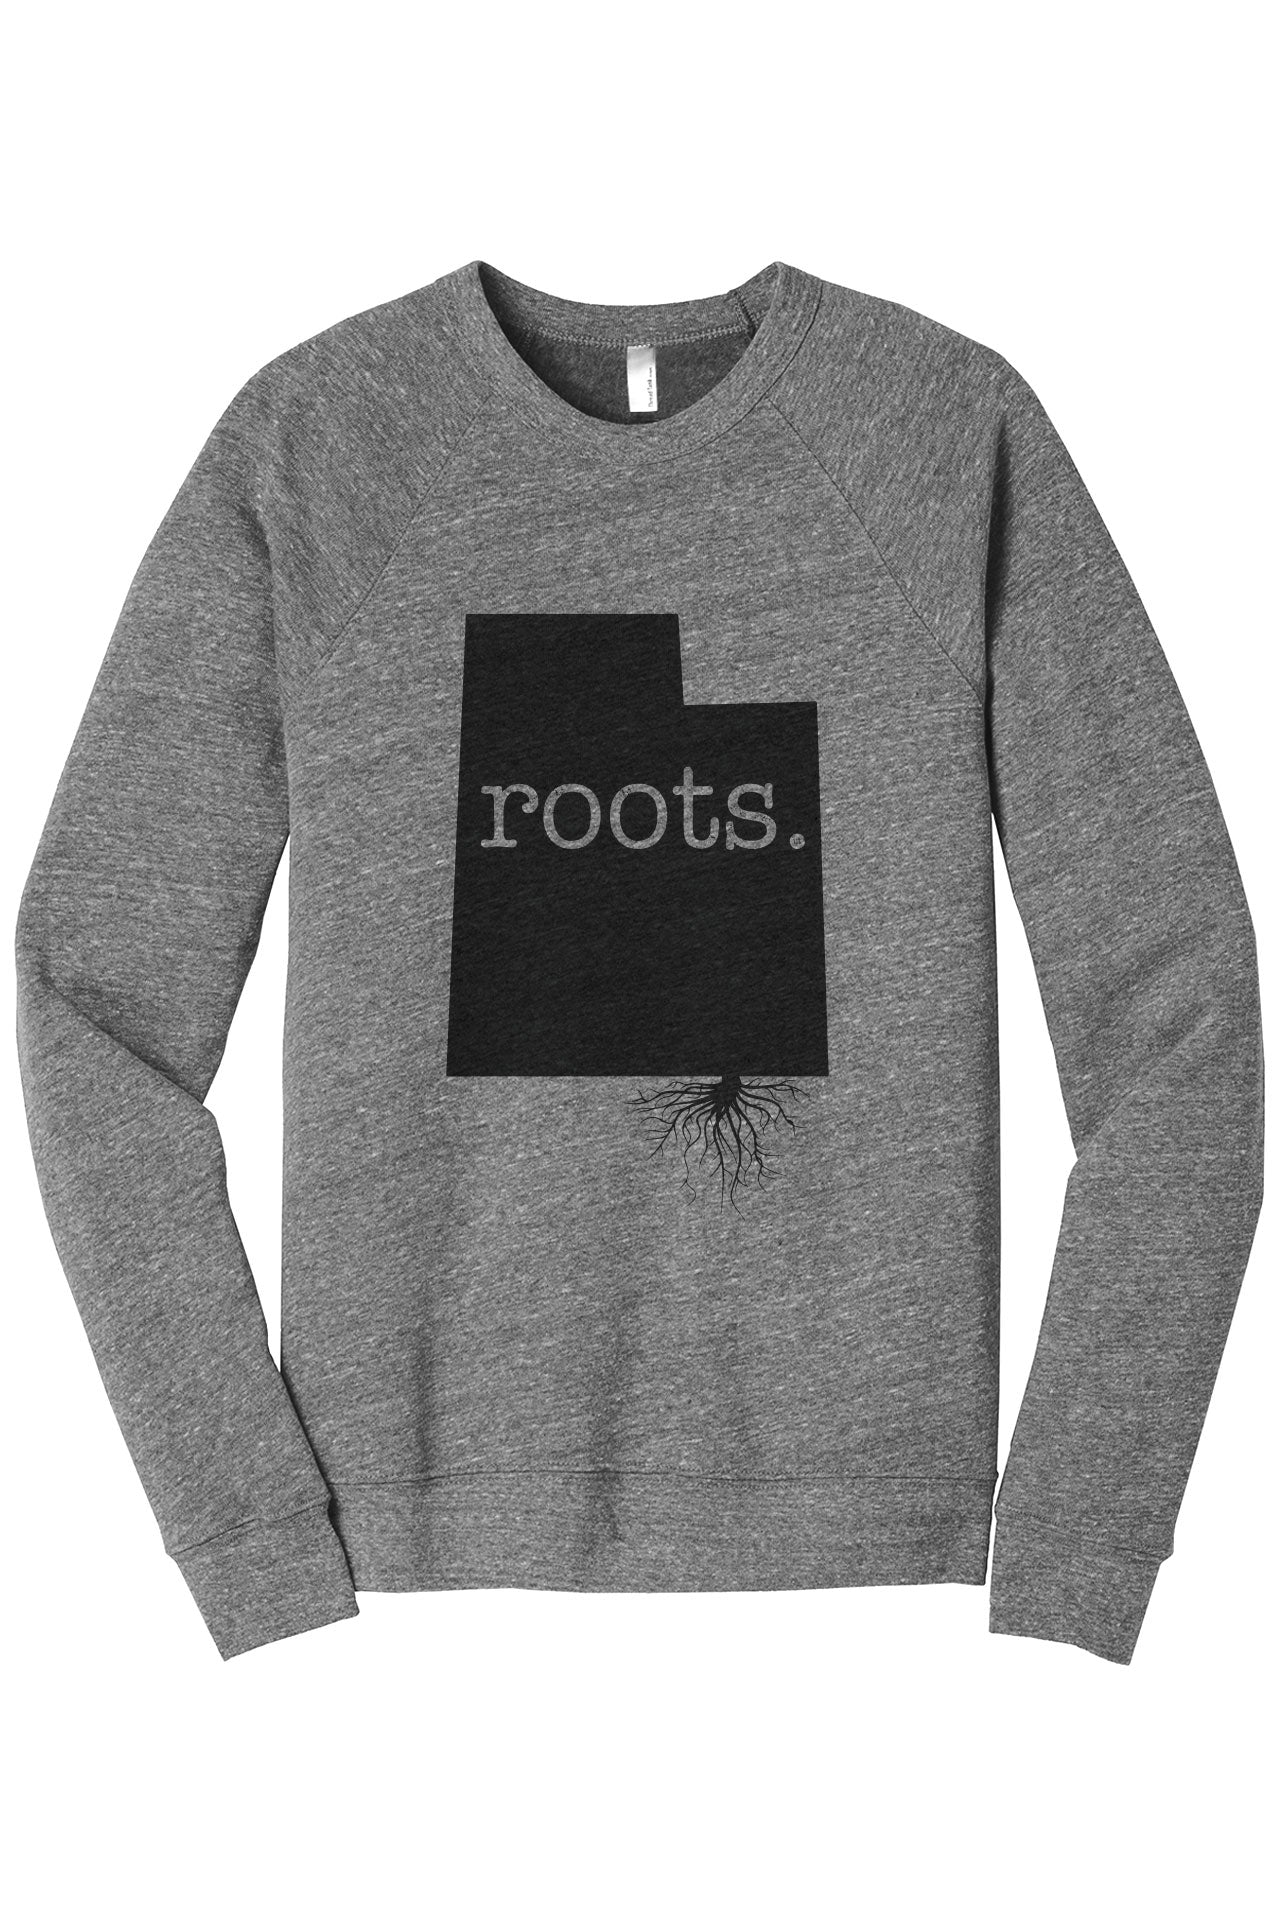 Home Roots State Utah UT Cozy Unisex Fleece Longsleeves Sweater Heather Grey FRONT